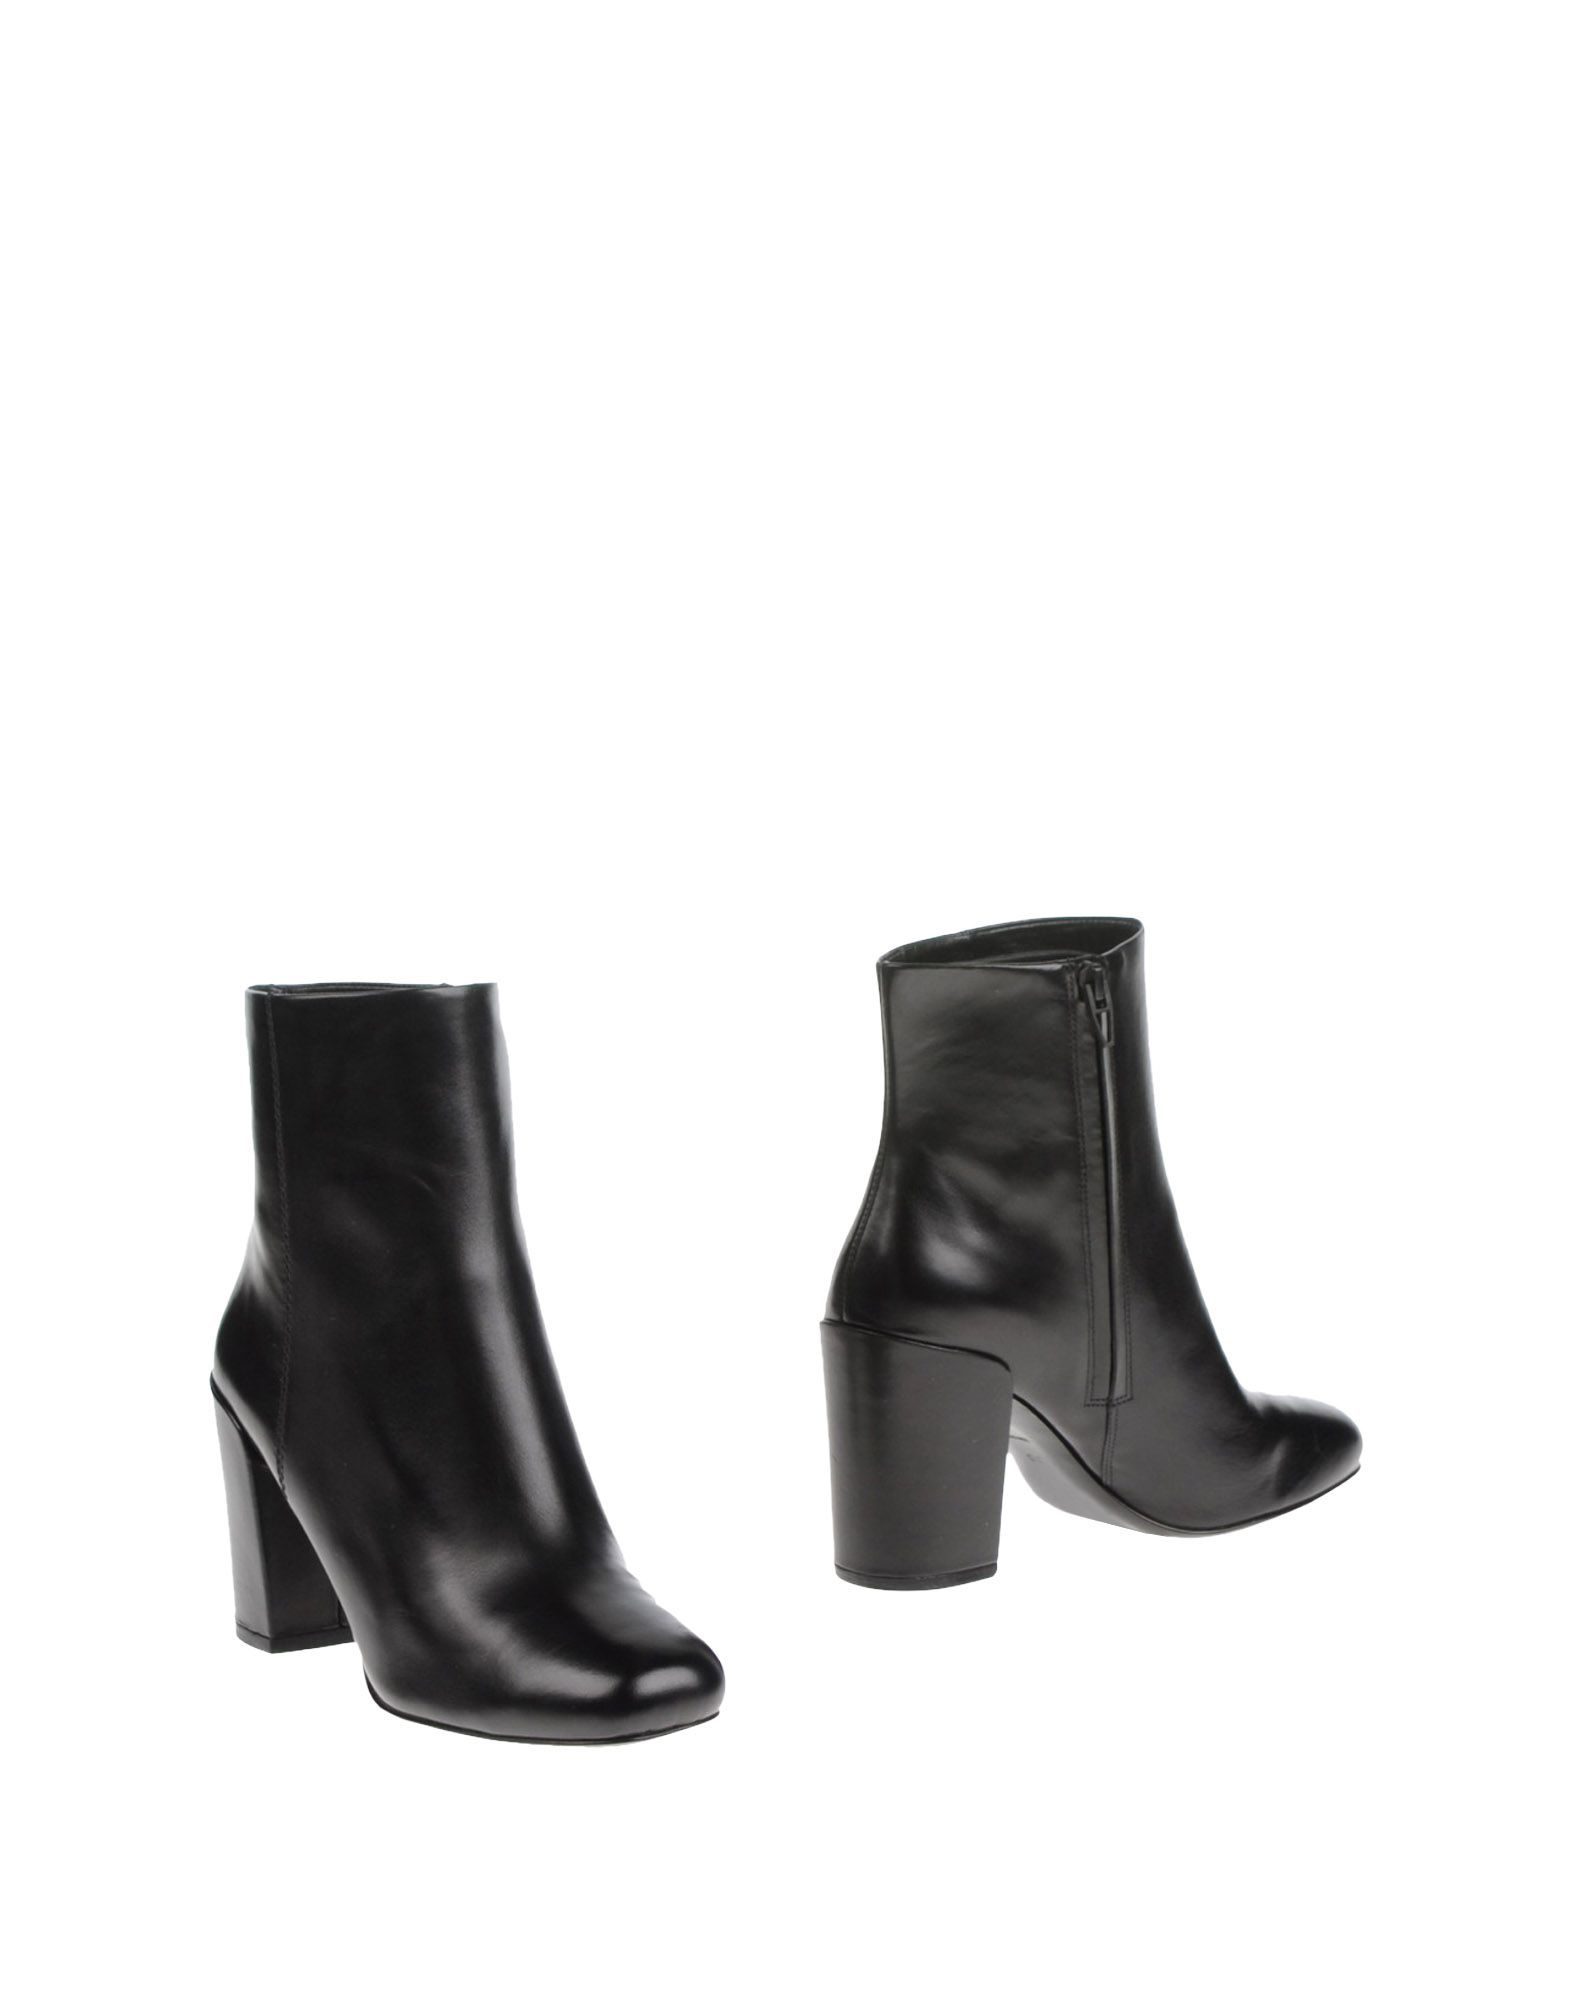 Bottine Alexander Wang Femme - Bottines Alexander Wang sur